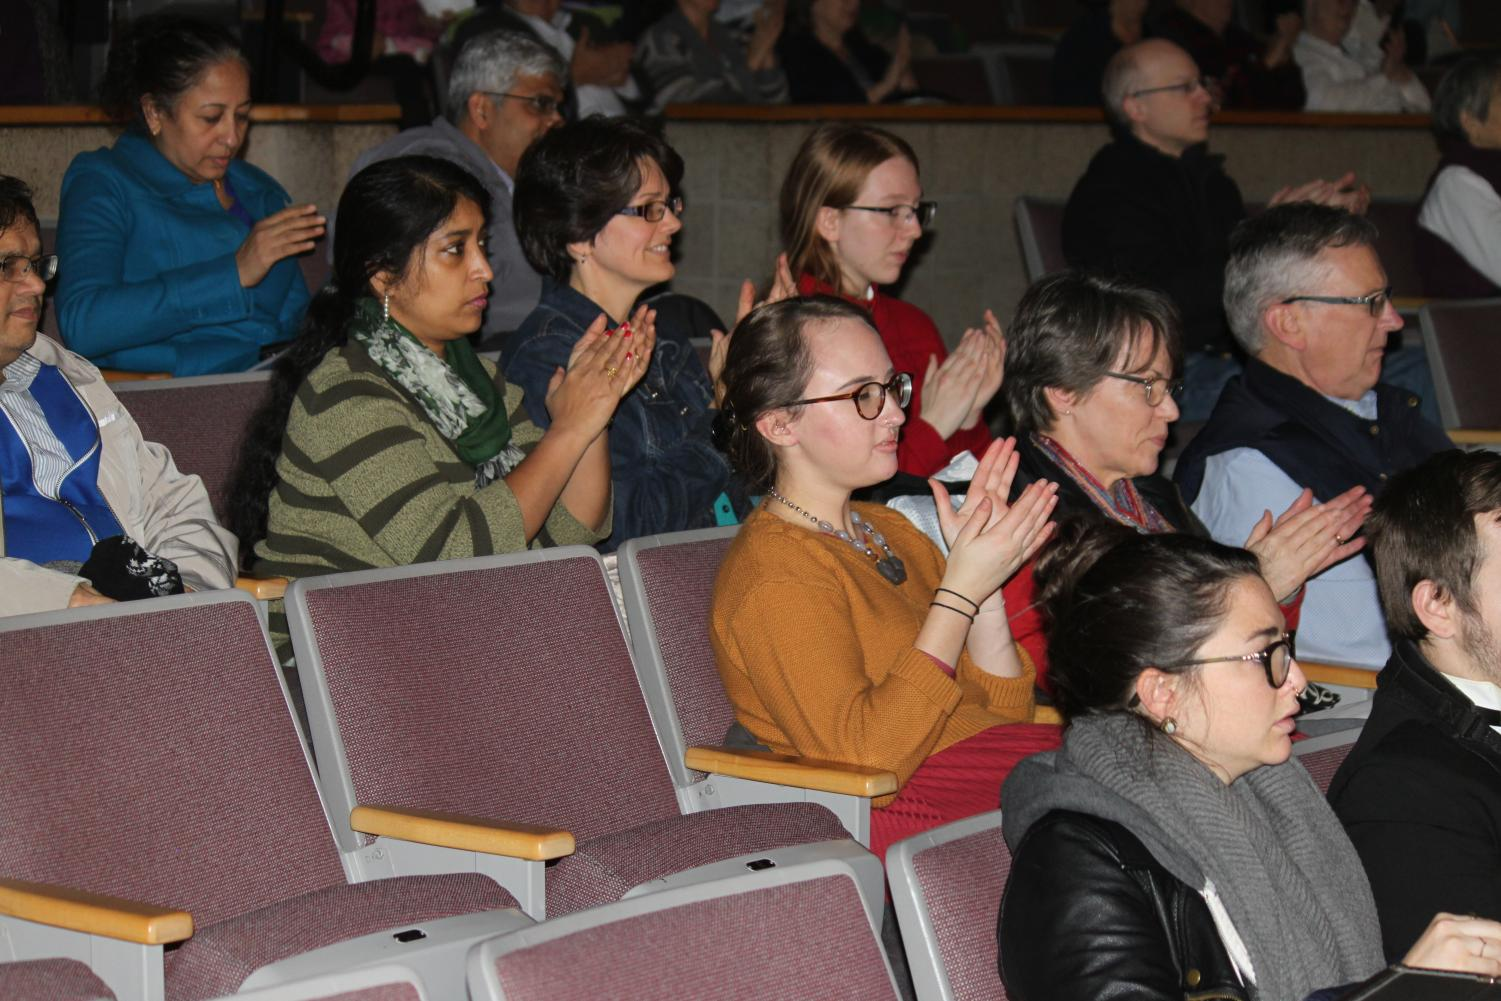 The+audience+of+parents%2C+WA+students%2C+and+faculty+applauds+after+a+piece